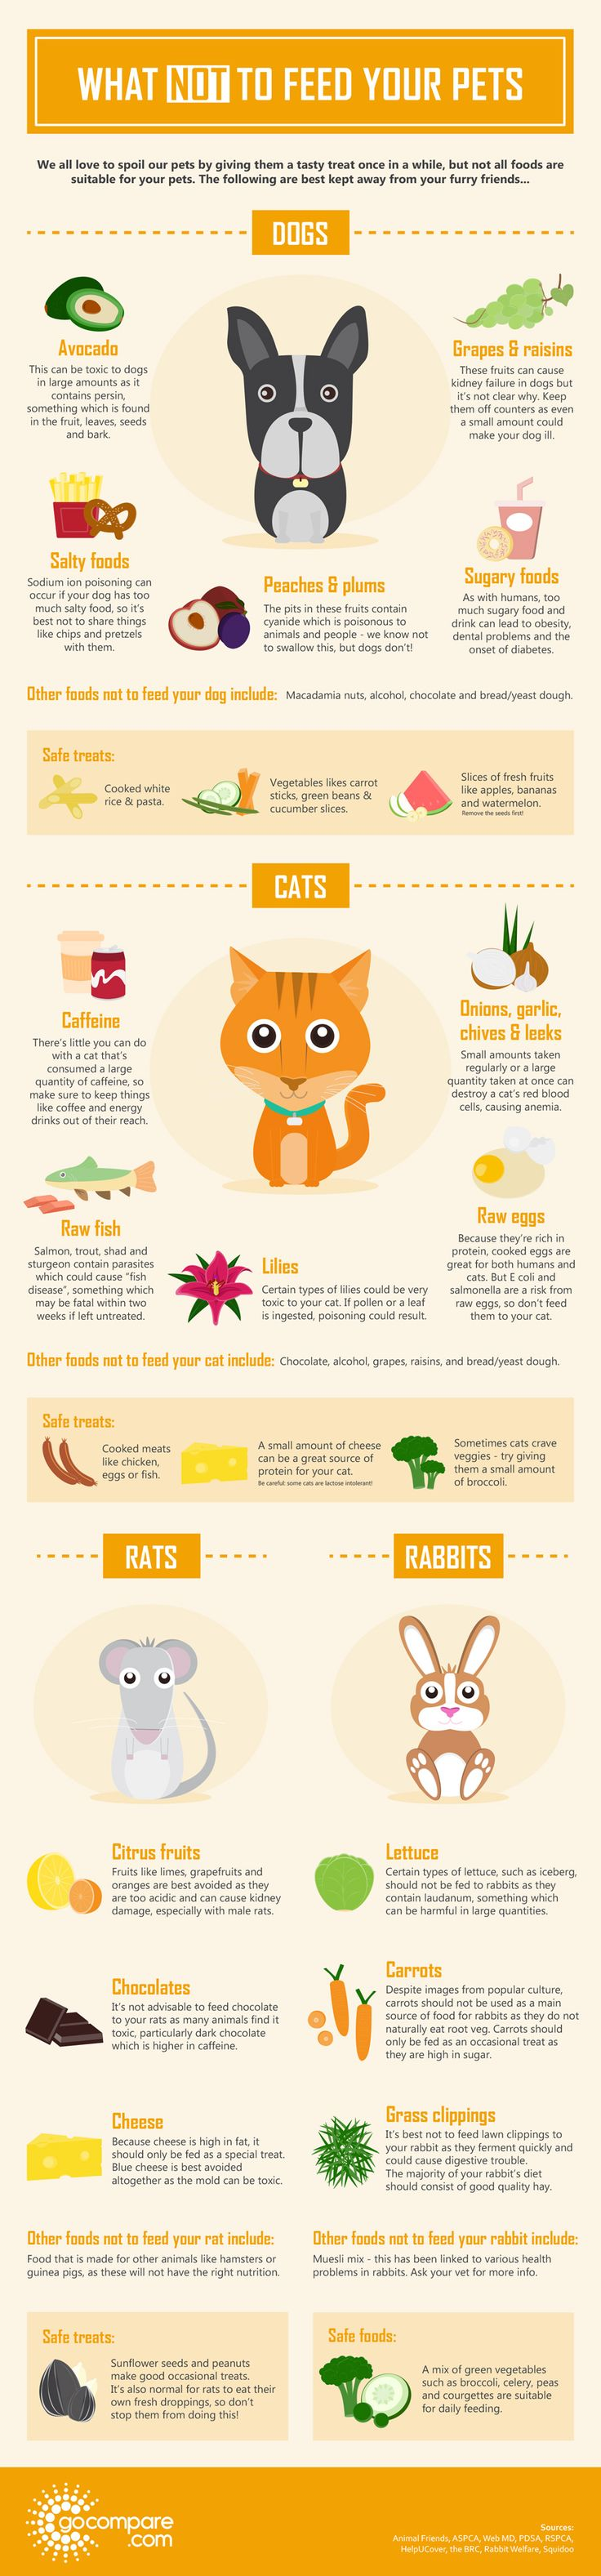 17 Best ideas about Pet Infographic on Pinterest.